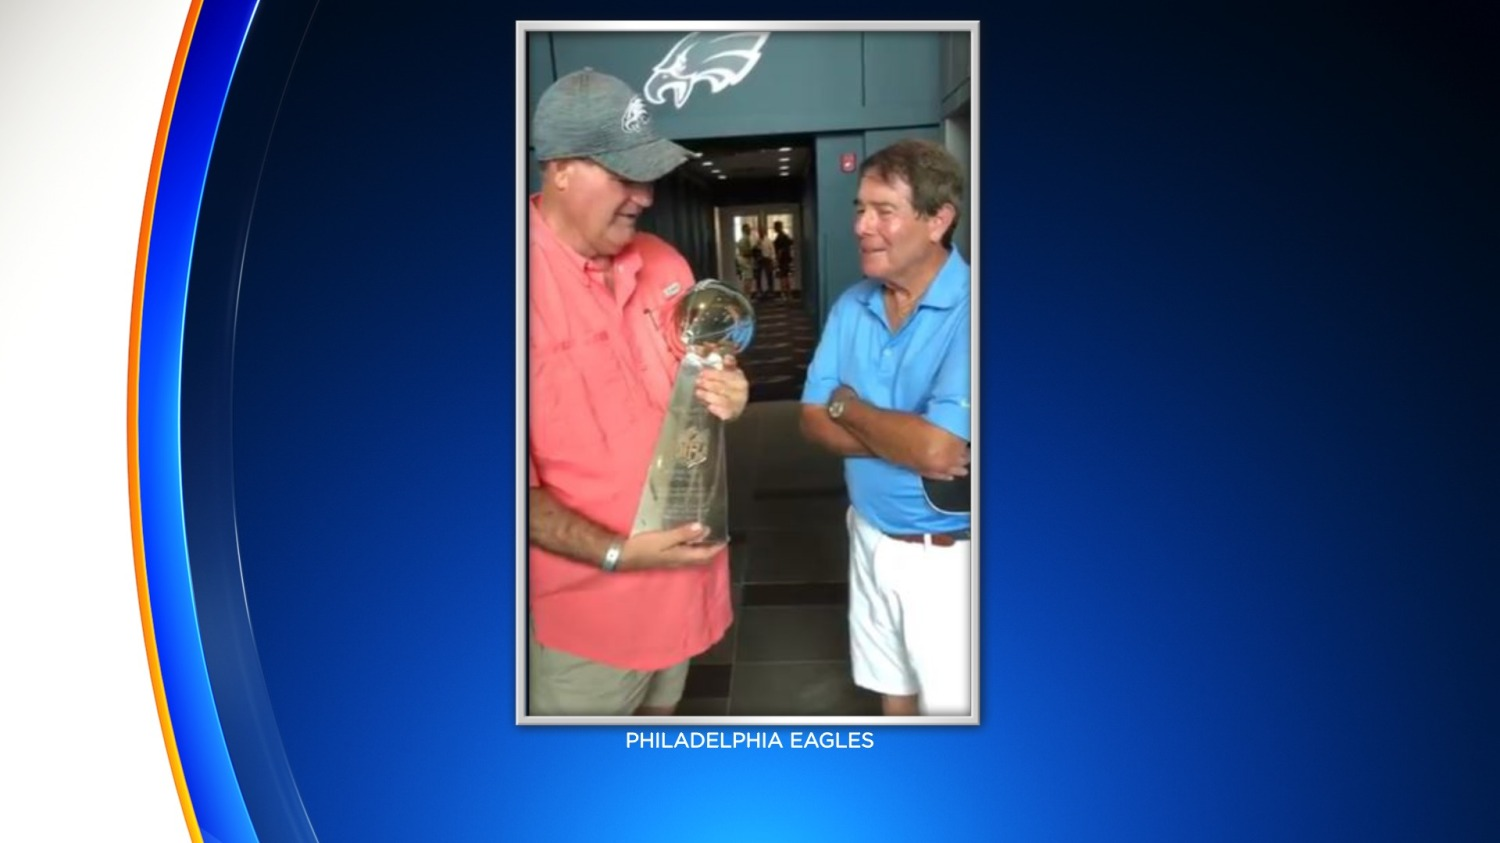 Eagles, Merrill Reese Give Fan Who Was Blinded While Serving In Vietnam Surprise Of Lifetime